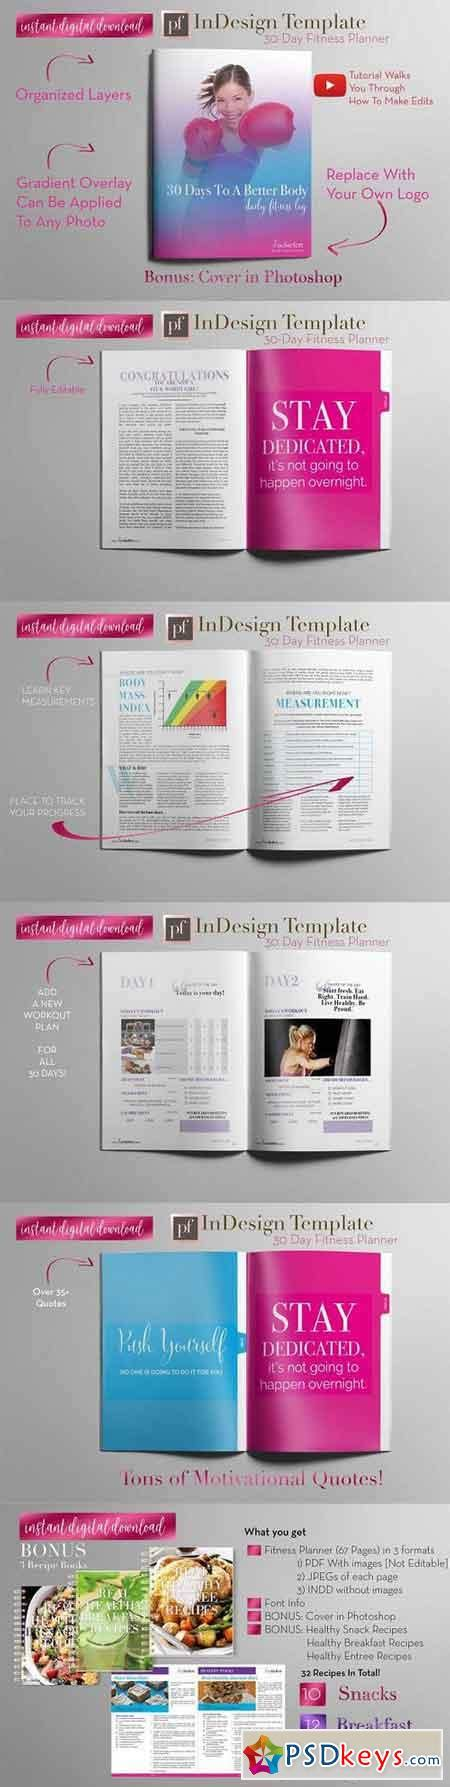 Fitness Planner Indesign Template 1205805 187 Free Download Photoshop Vector Stock Image Via Indesign Planner Template Free